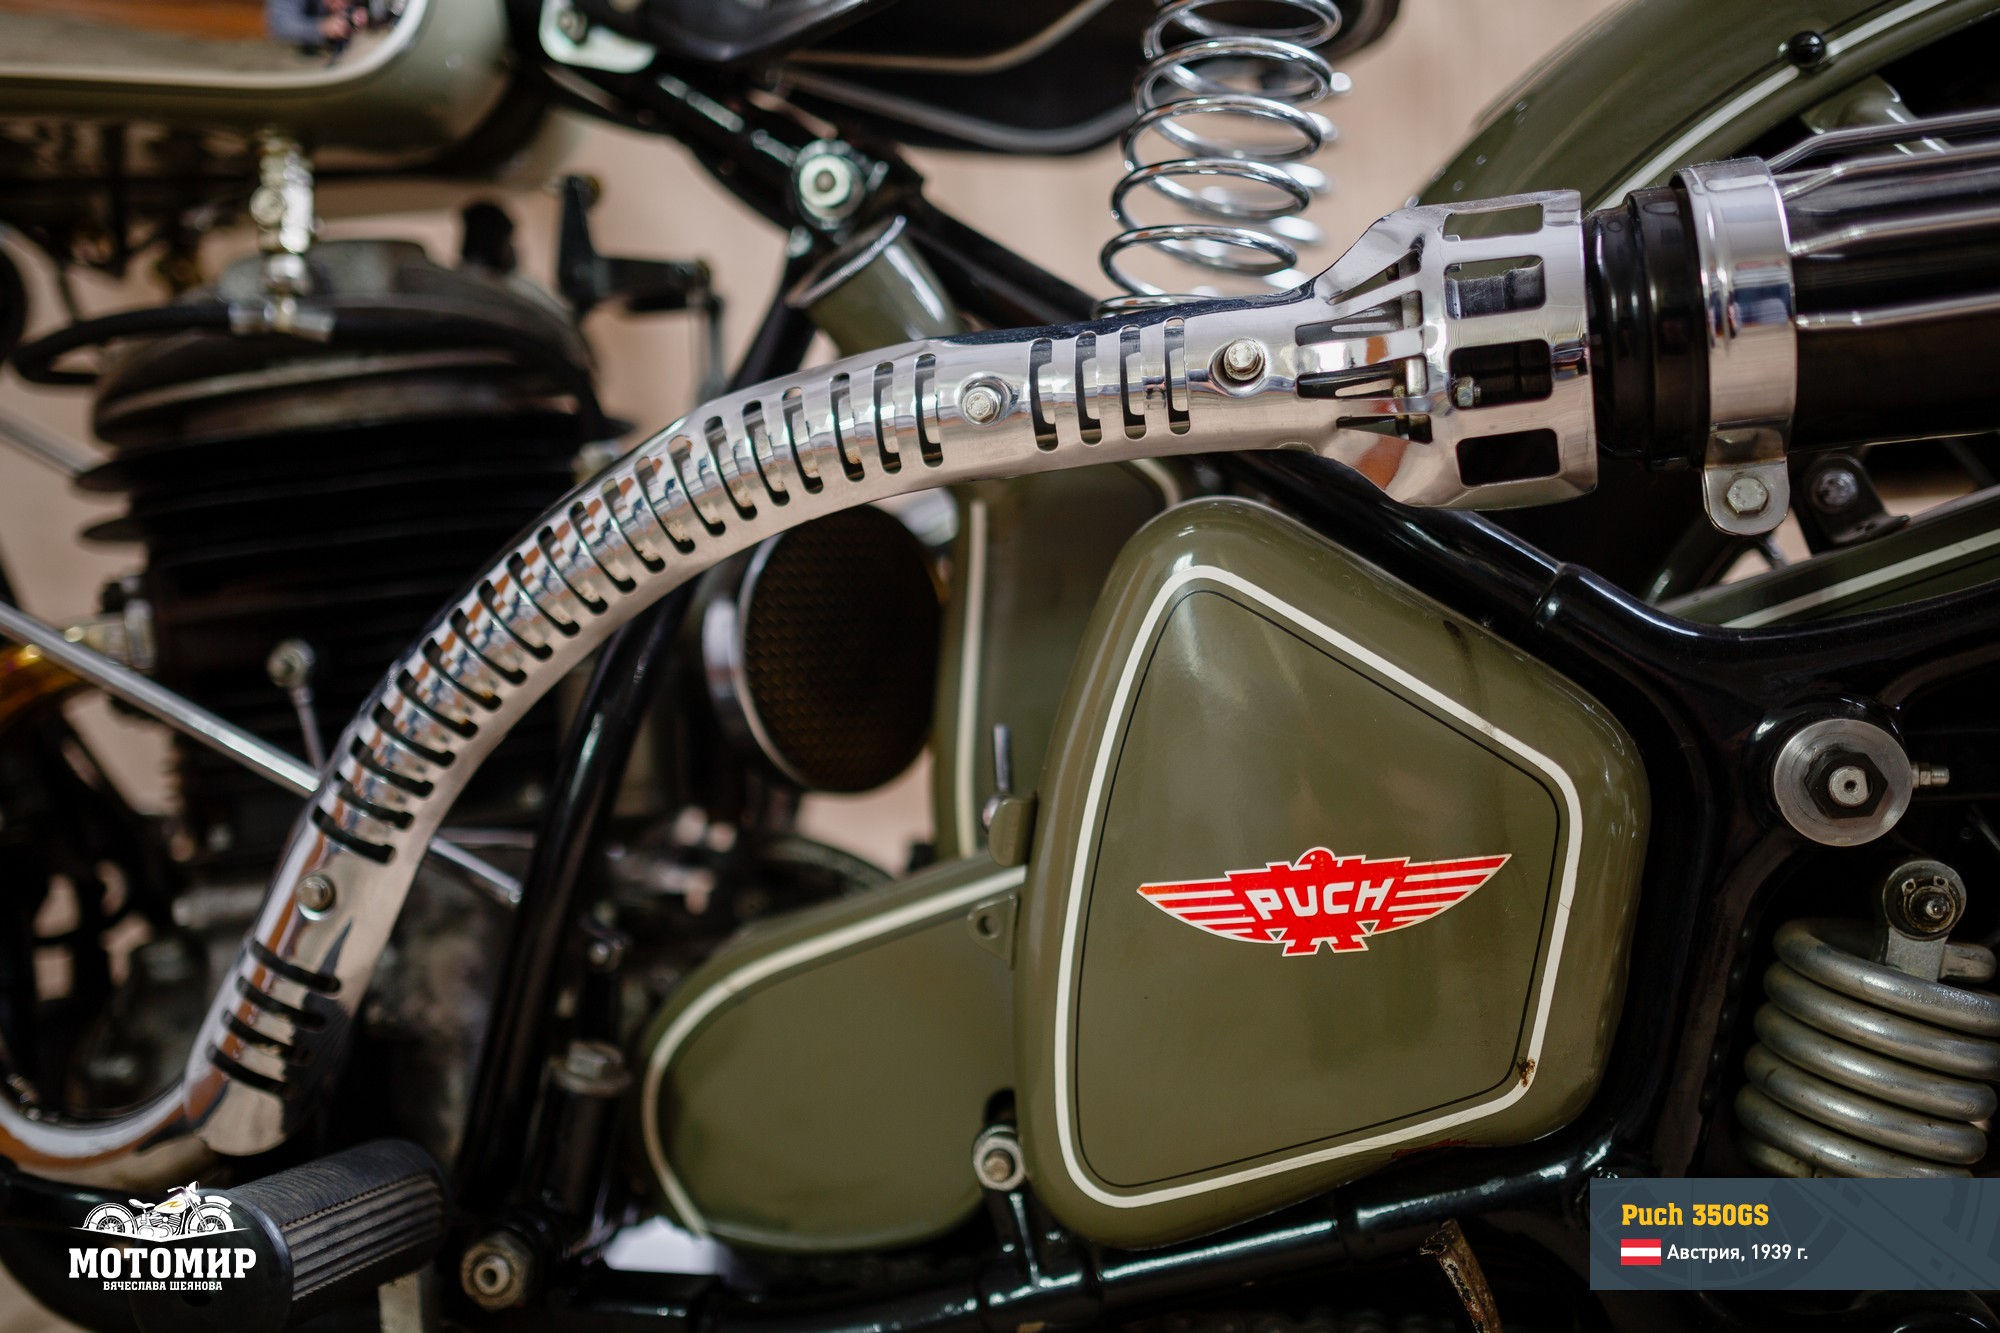 puch-350gs-201601-web-26